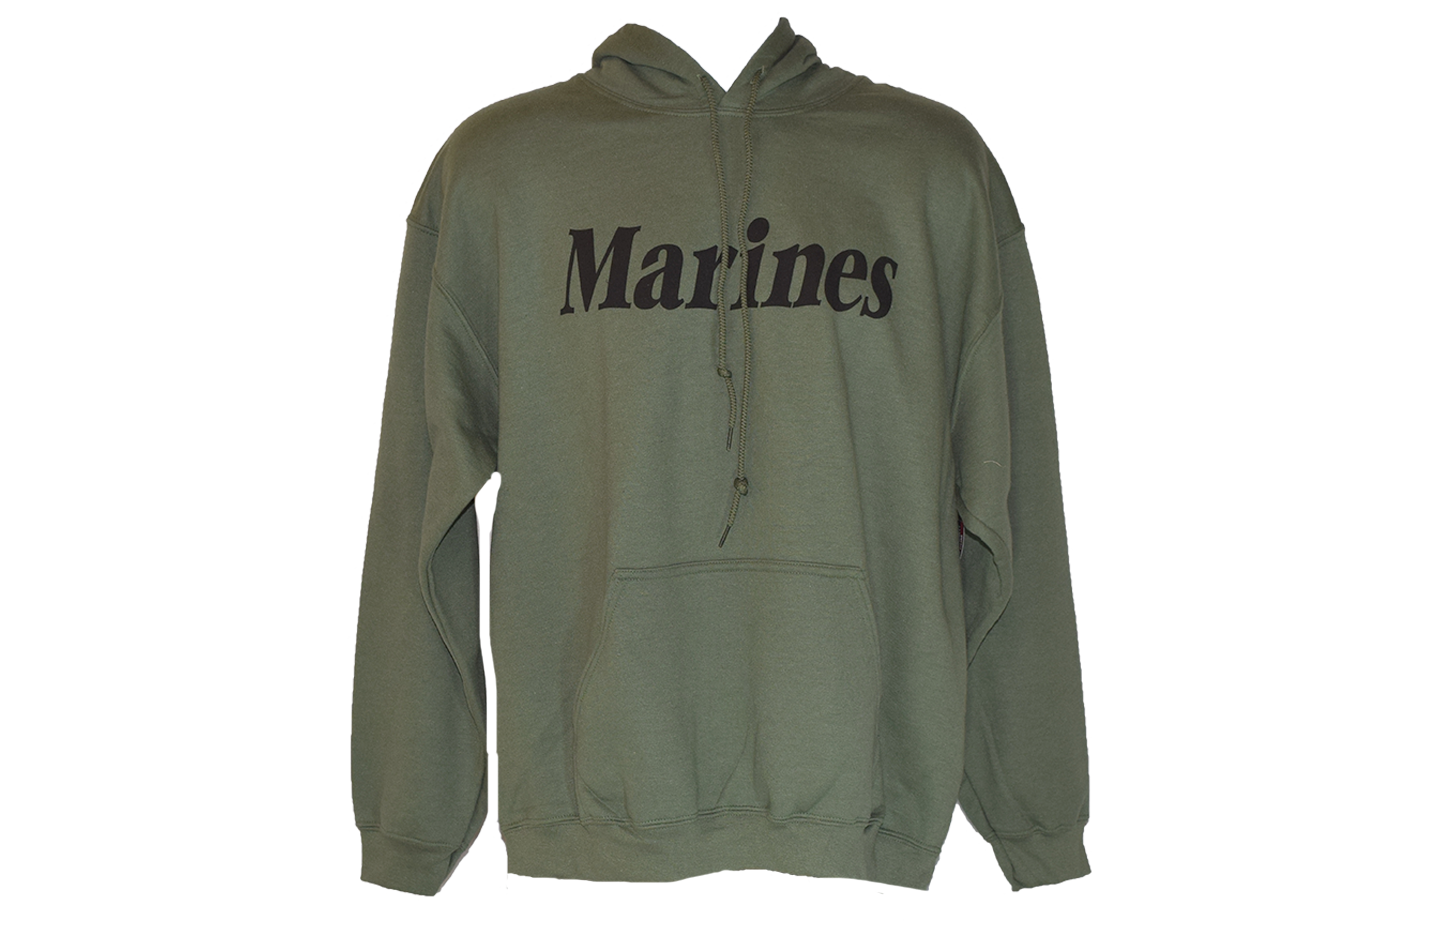 Marines Text Green Sweater